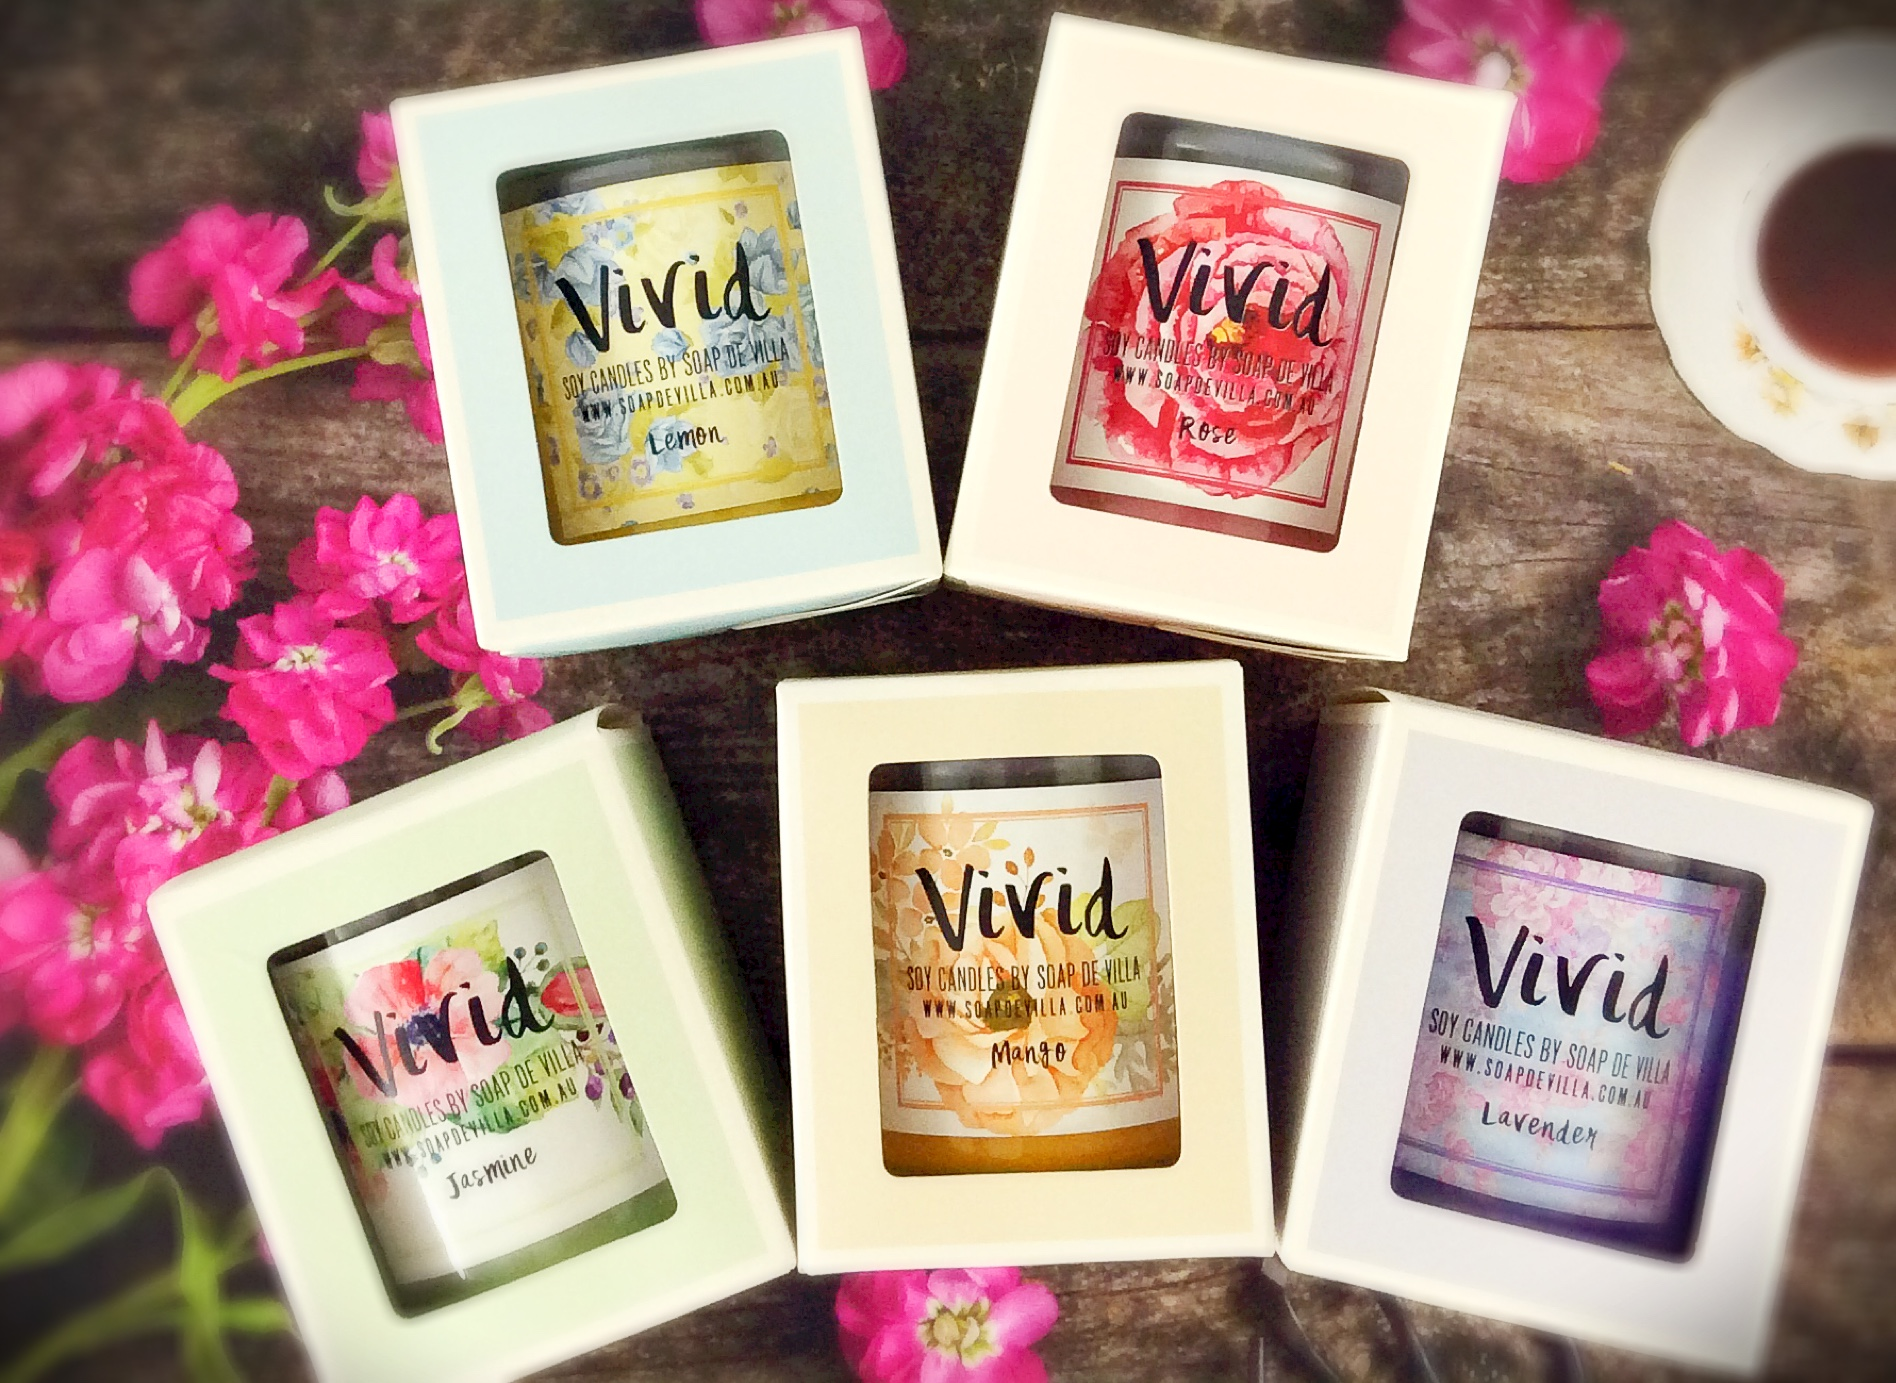 vivid-soy-candle-jars-by-soap-de-villa.jpg